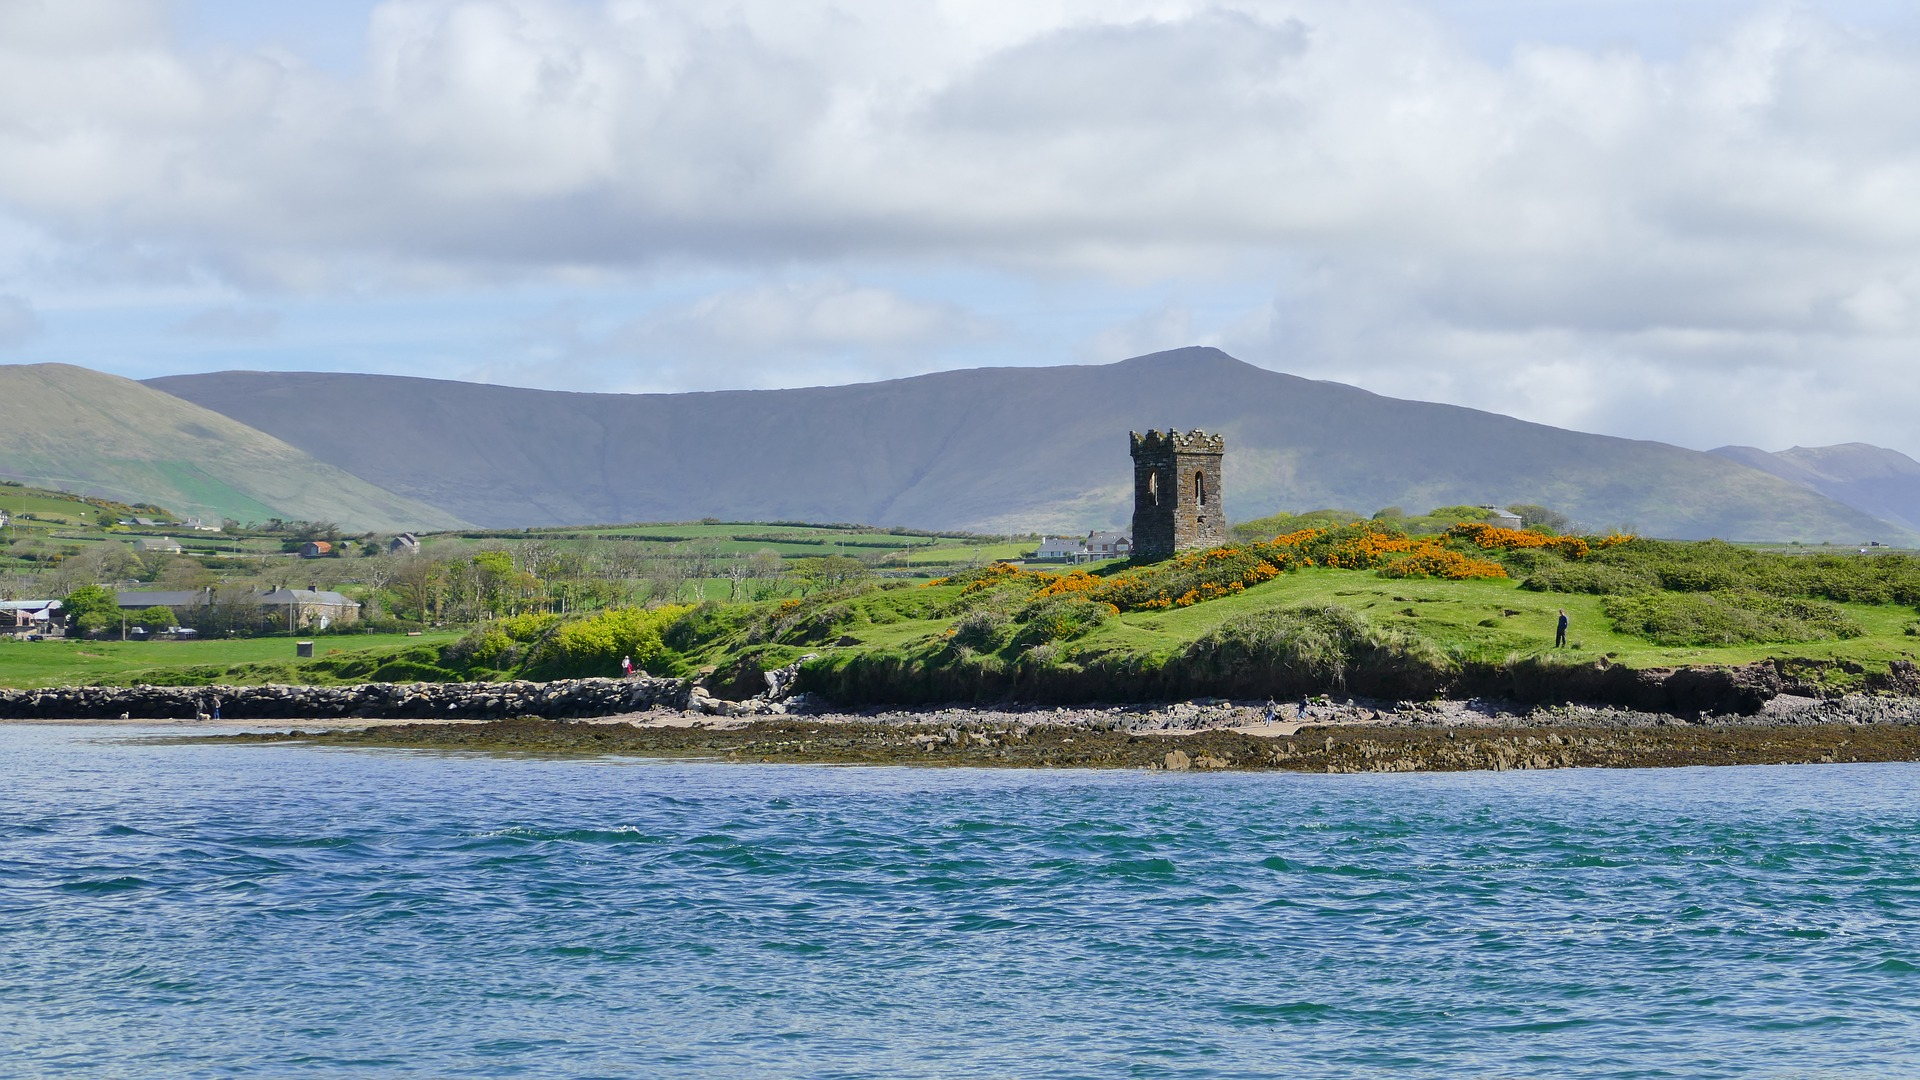 https://pixabay.com/en/dingle-bay-ireland-landscape-2641983/